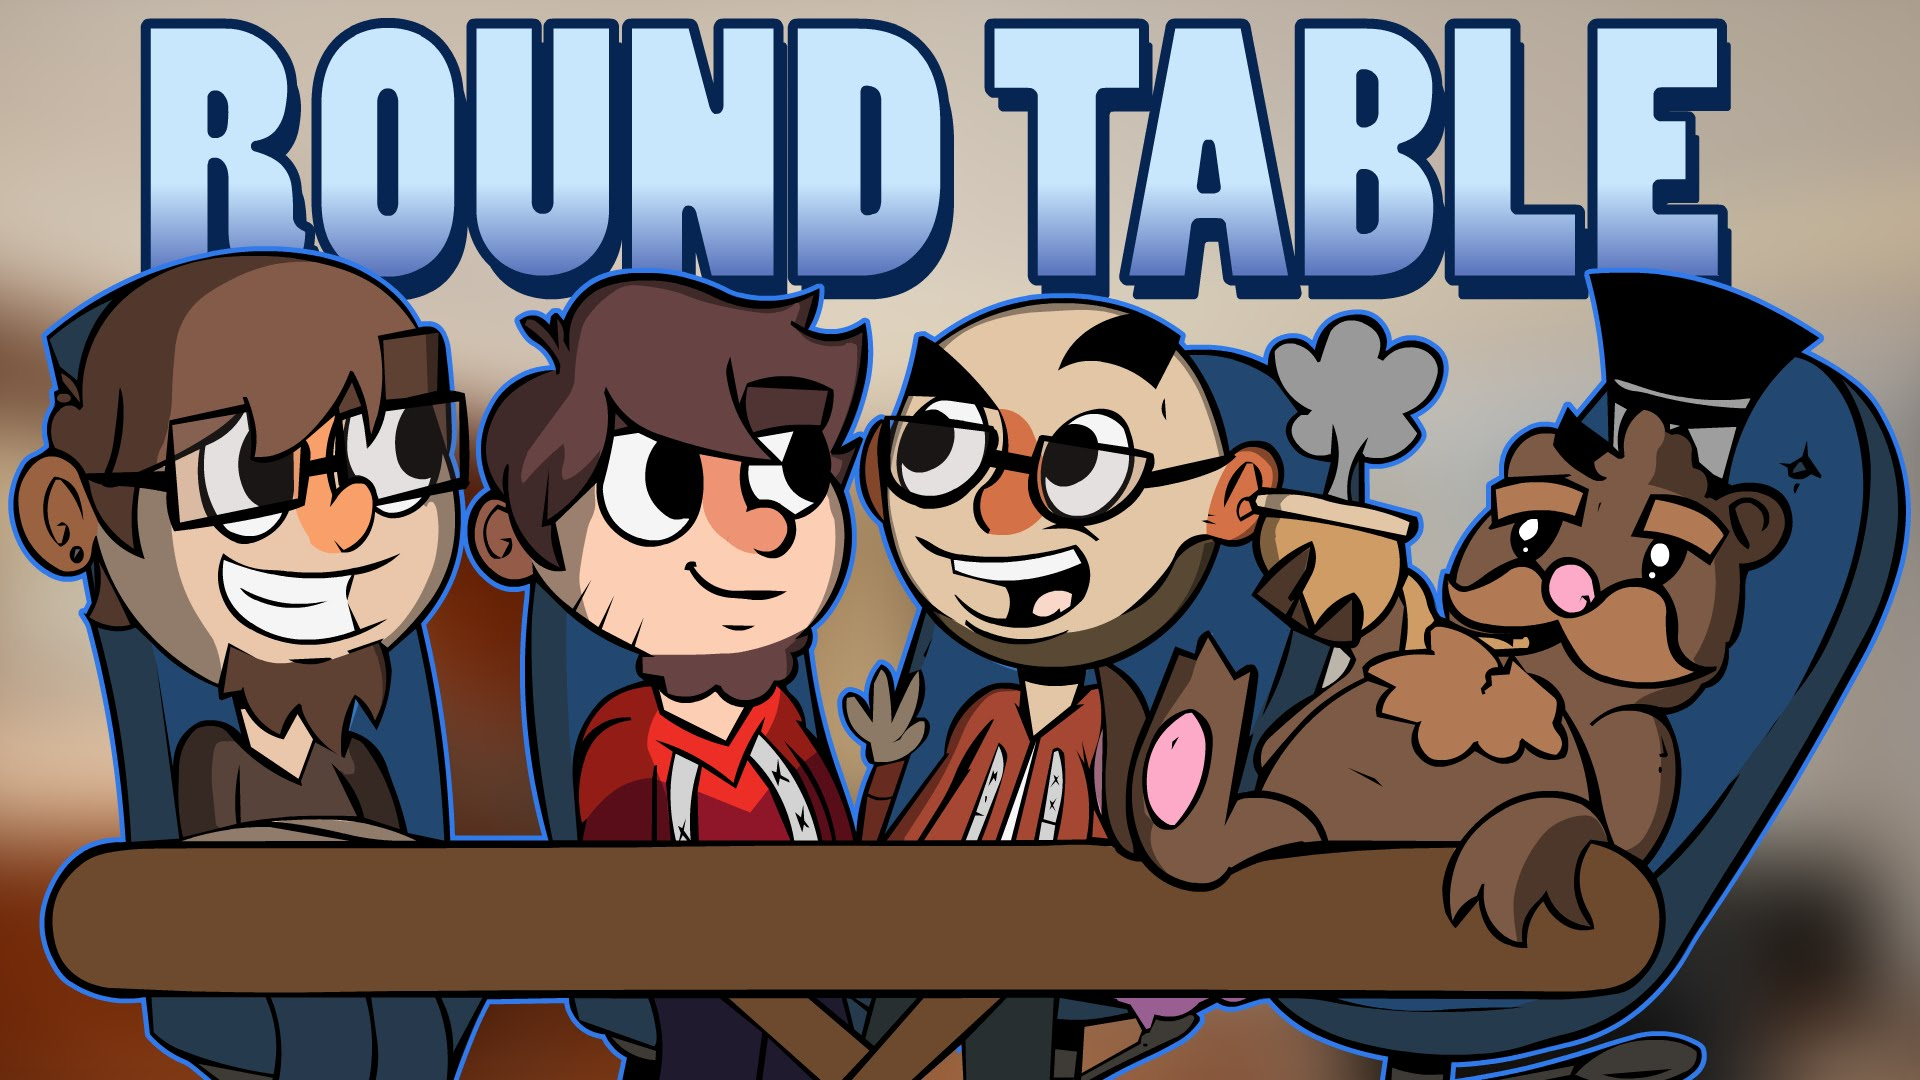 Round Table Podcast.The Roundtable Podcast Has Been Cancelled Htxt Africa